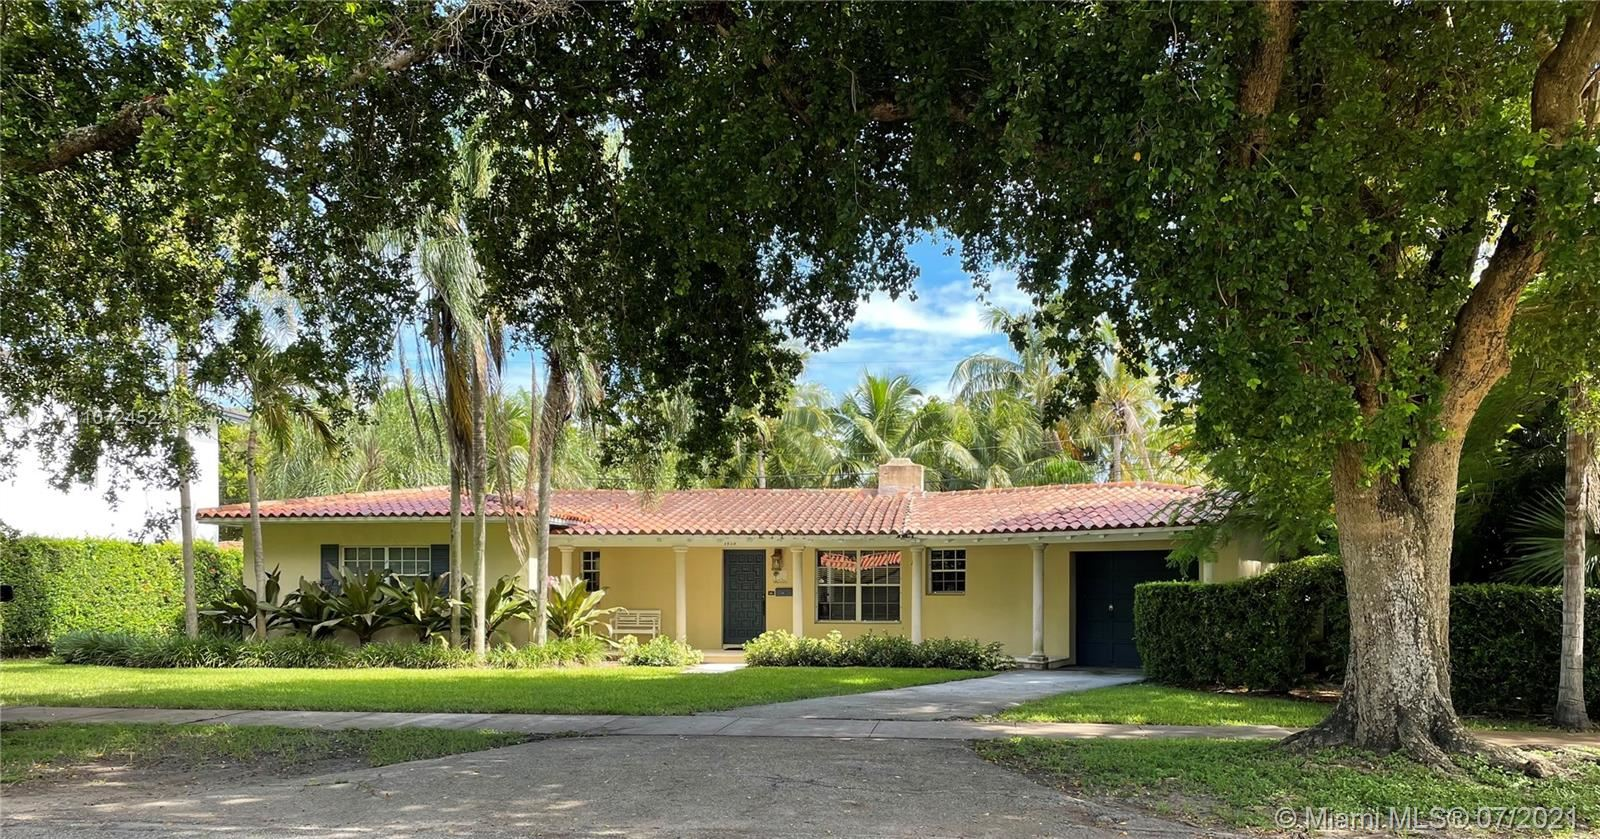 Photo of 1534 Ancona Ave, Coral Gables, FL 33146 (MLS # A11072452)